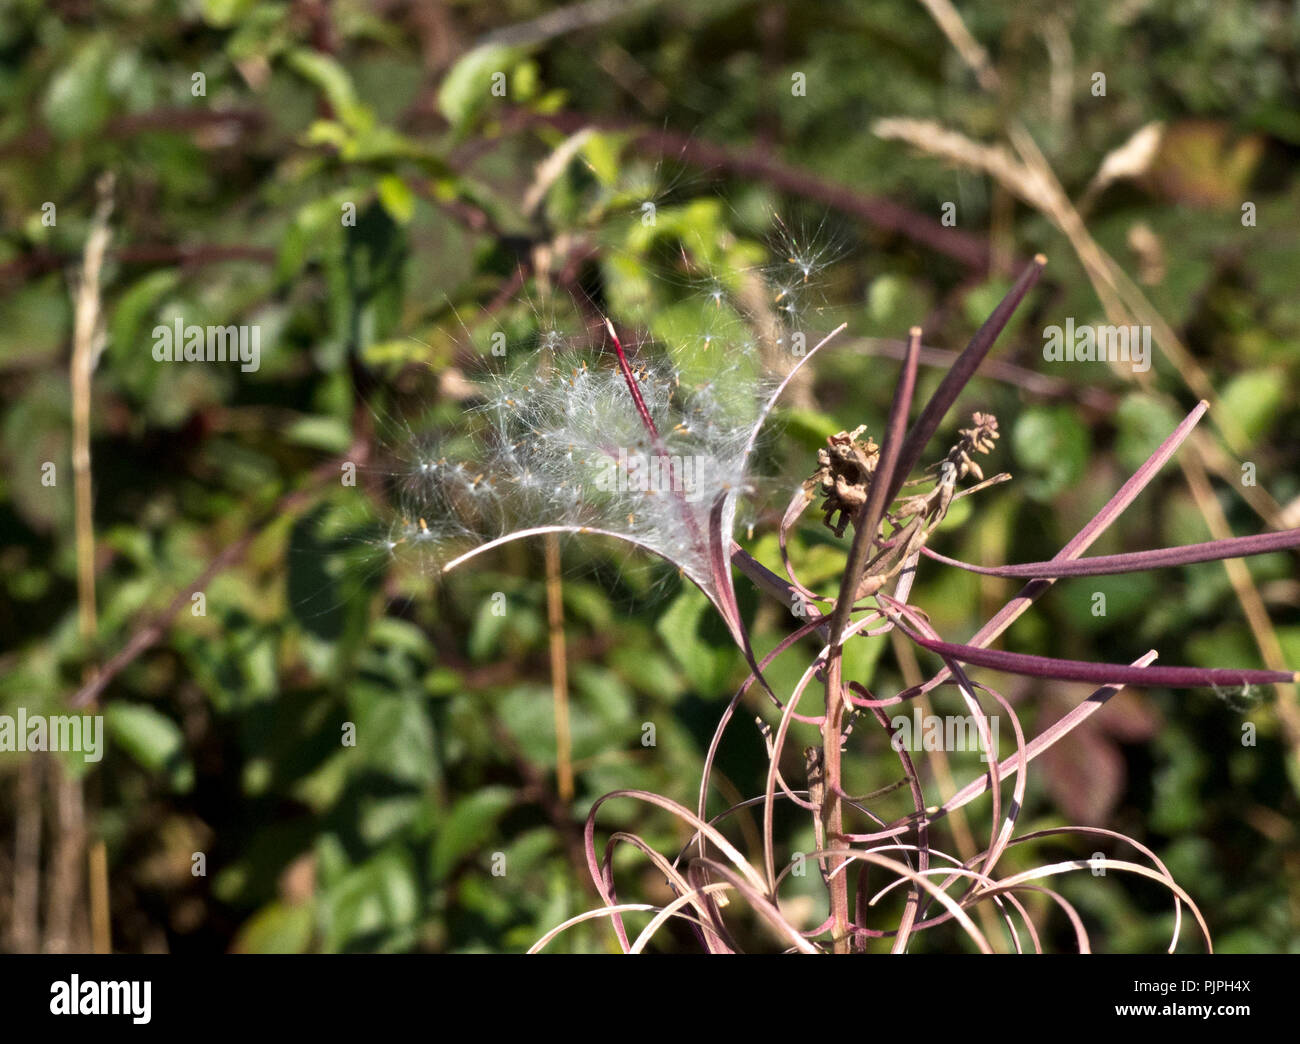 A common wildlflower forming thick stands on disturbed ground, the seeds burst forth in Autumn and are dispursed far and wide on silken parachutes by  - Stock Image